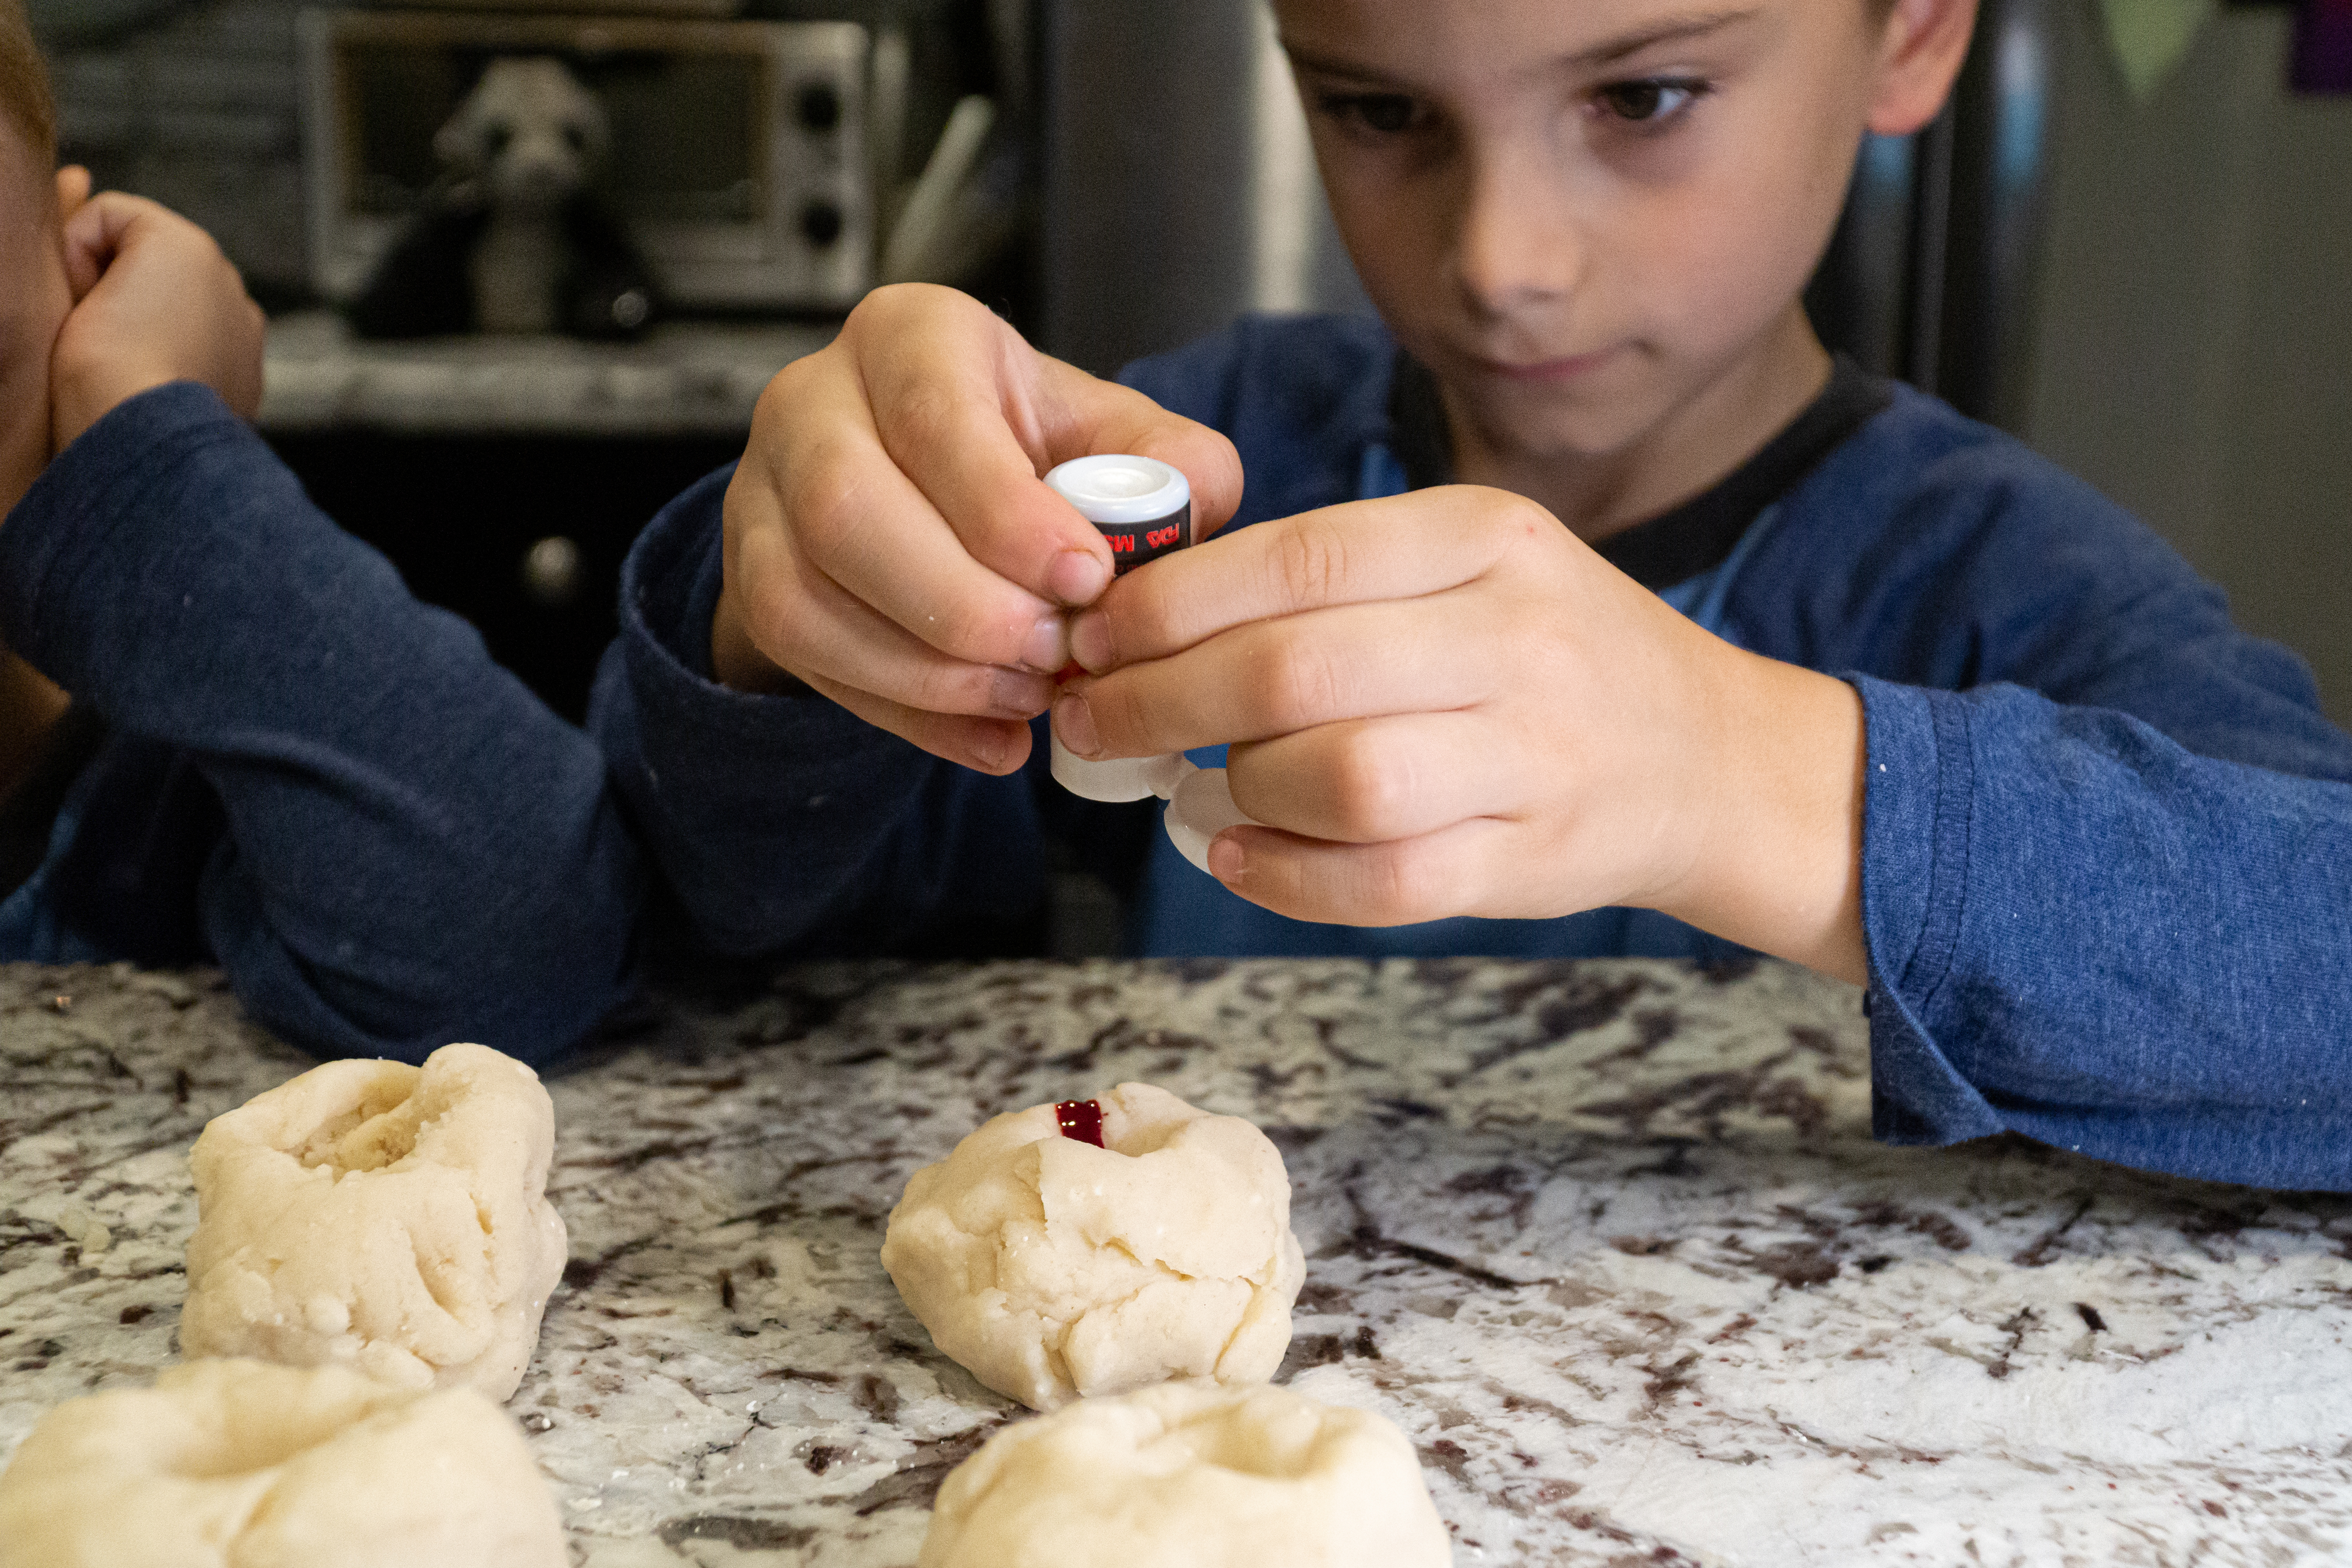 Home Made Playdough - Add Food Coloring